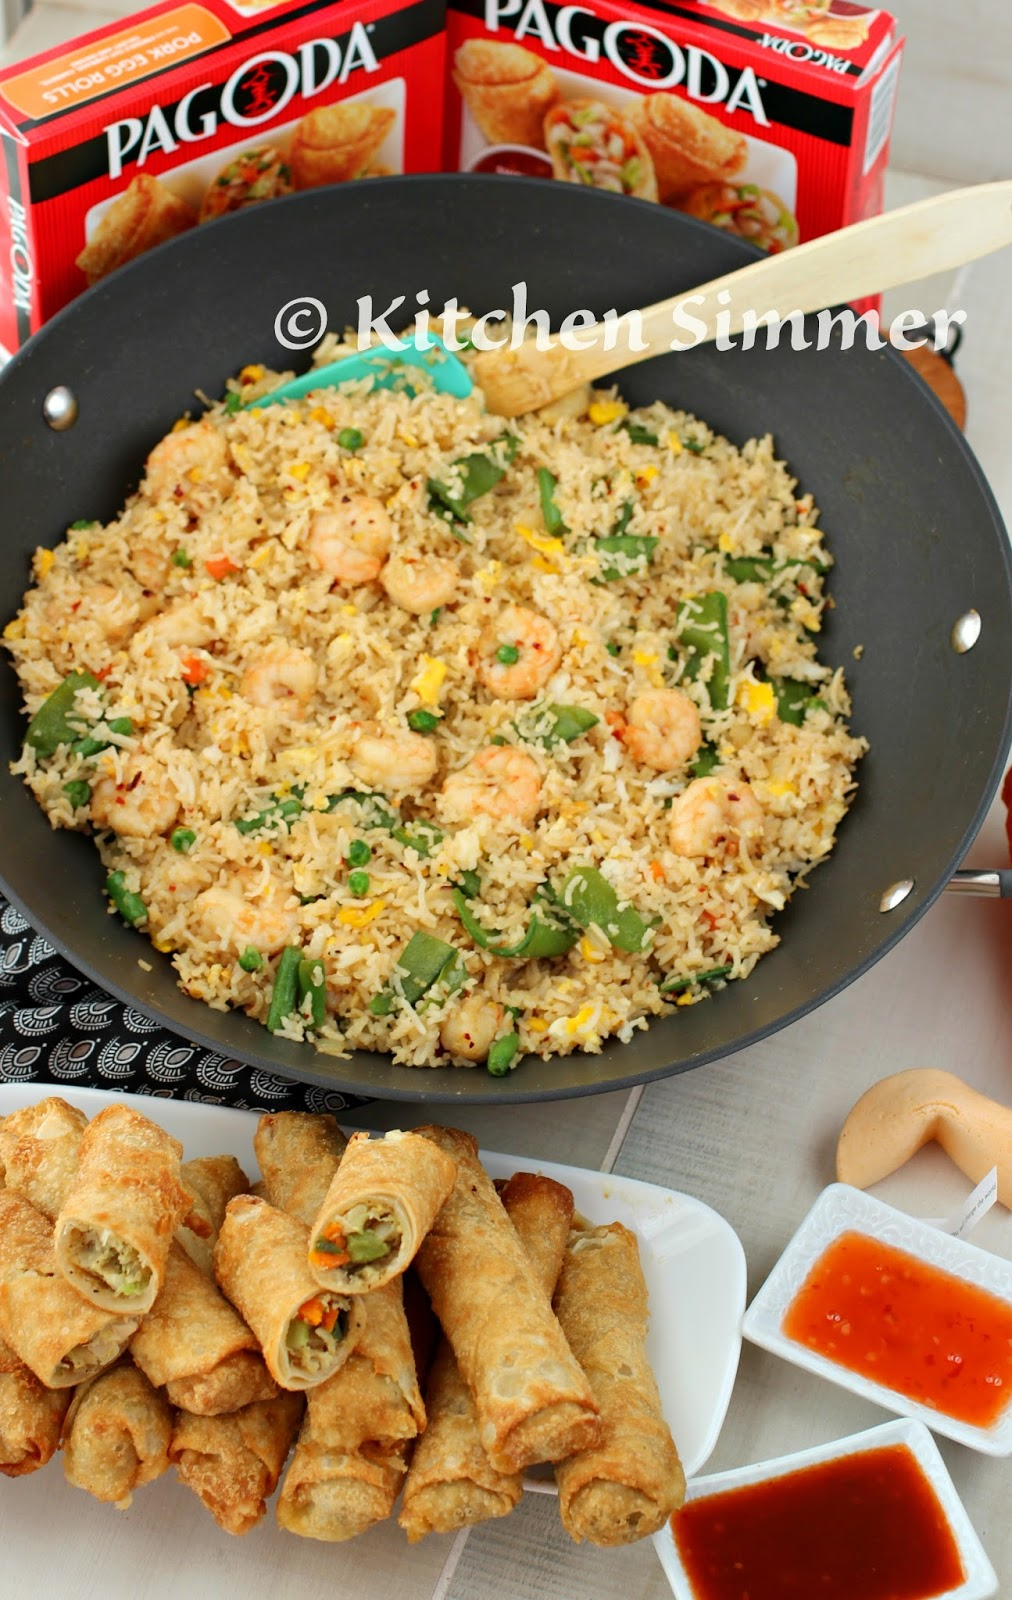 Kitchen Simmer Easy Shrimp Fried Rice With Pagoda Egg Rolls